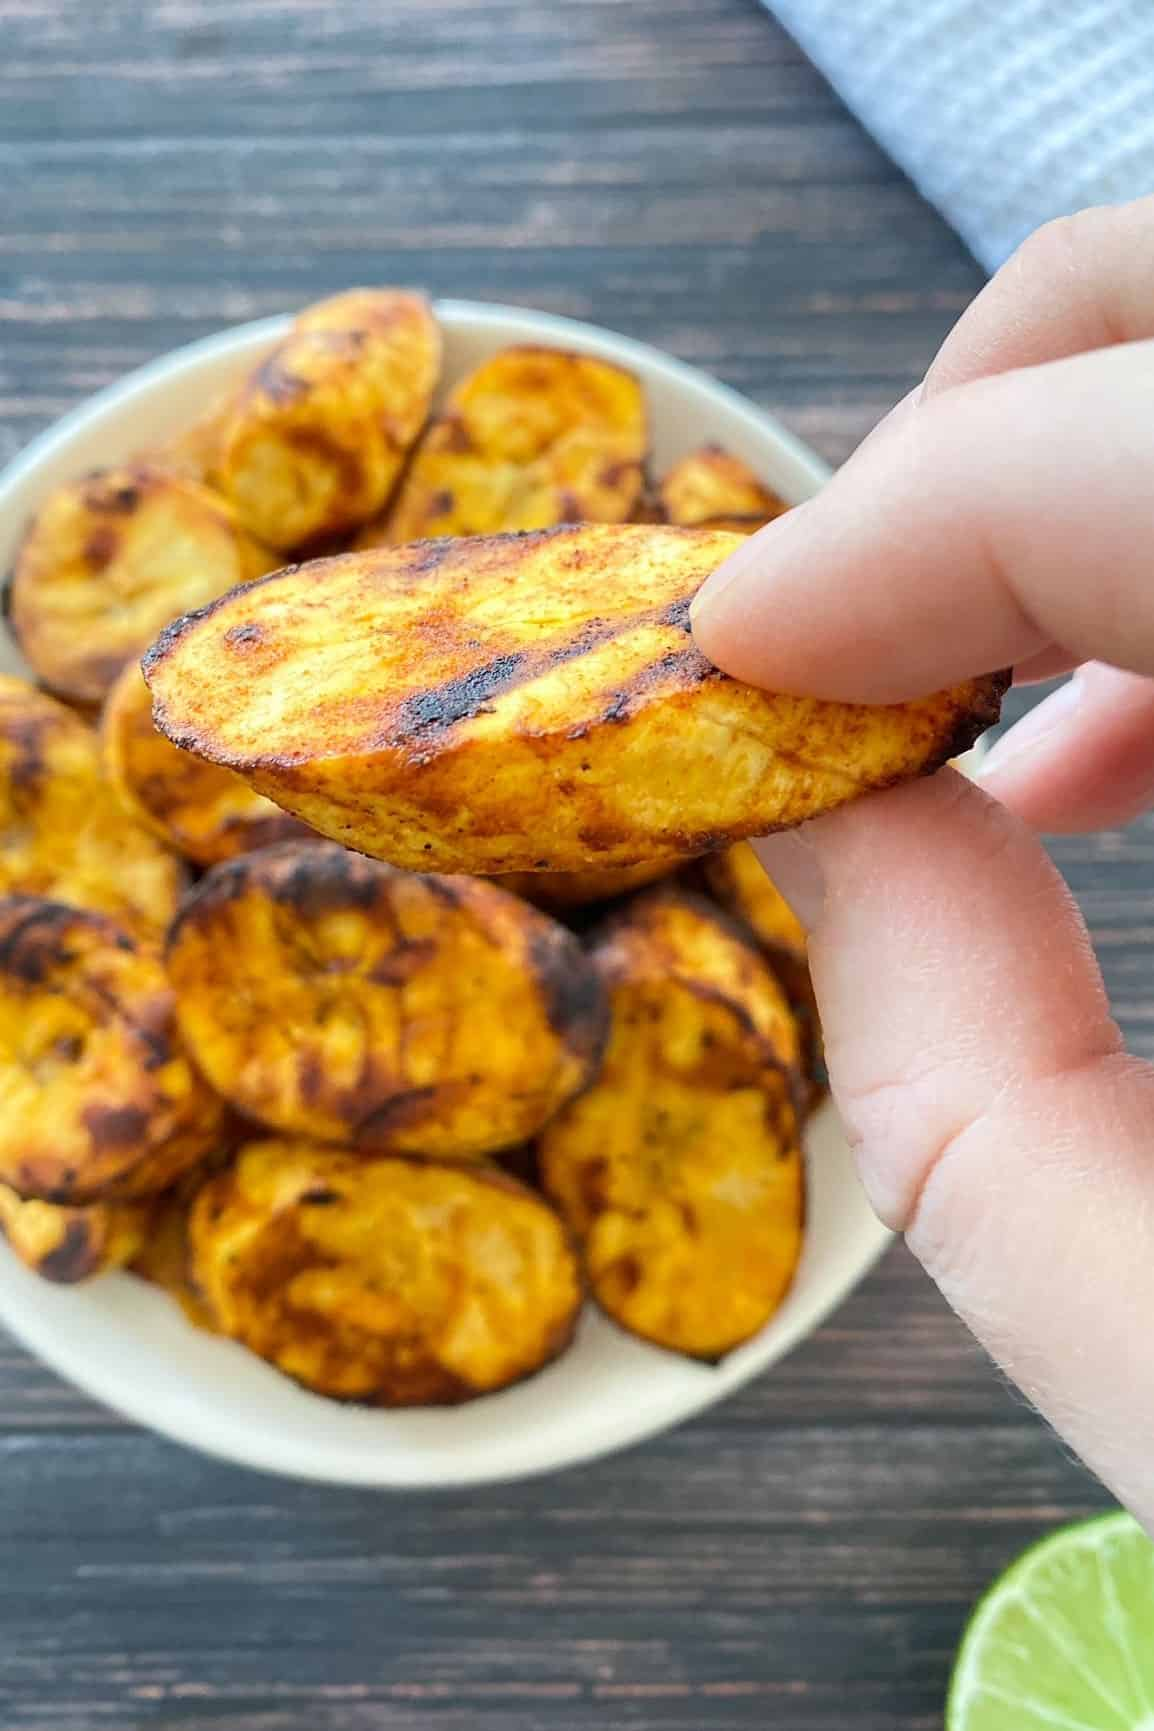 Hand holding up slice of air fried plantain over plate with additional slices.